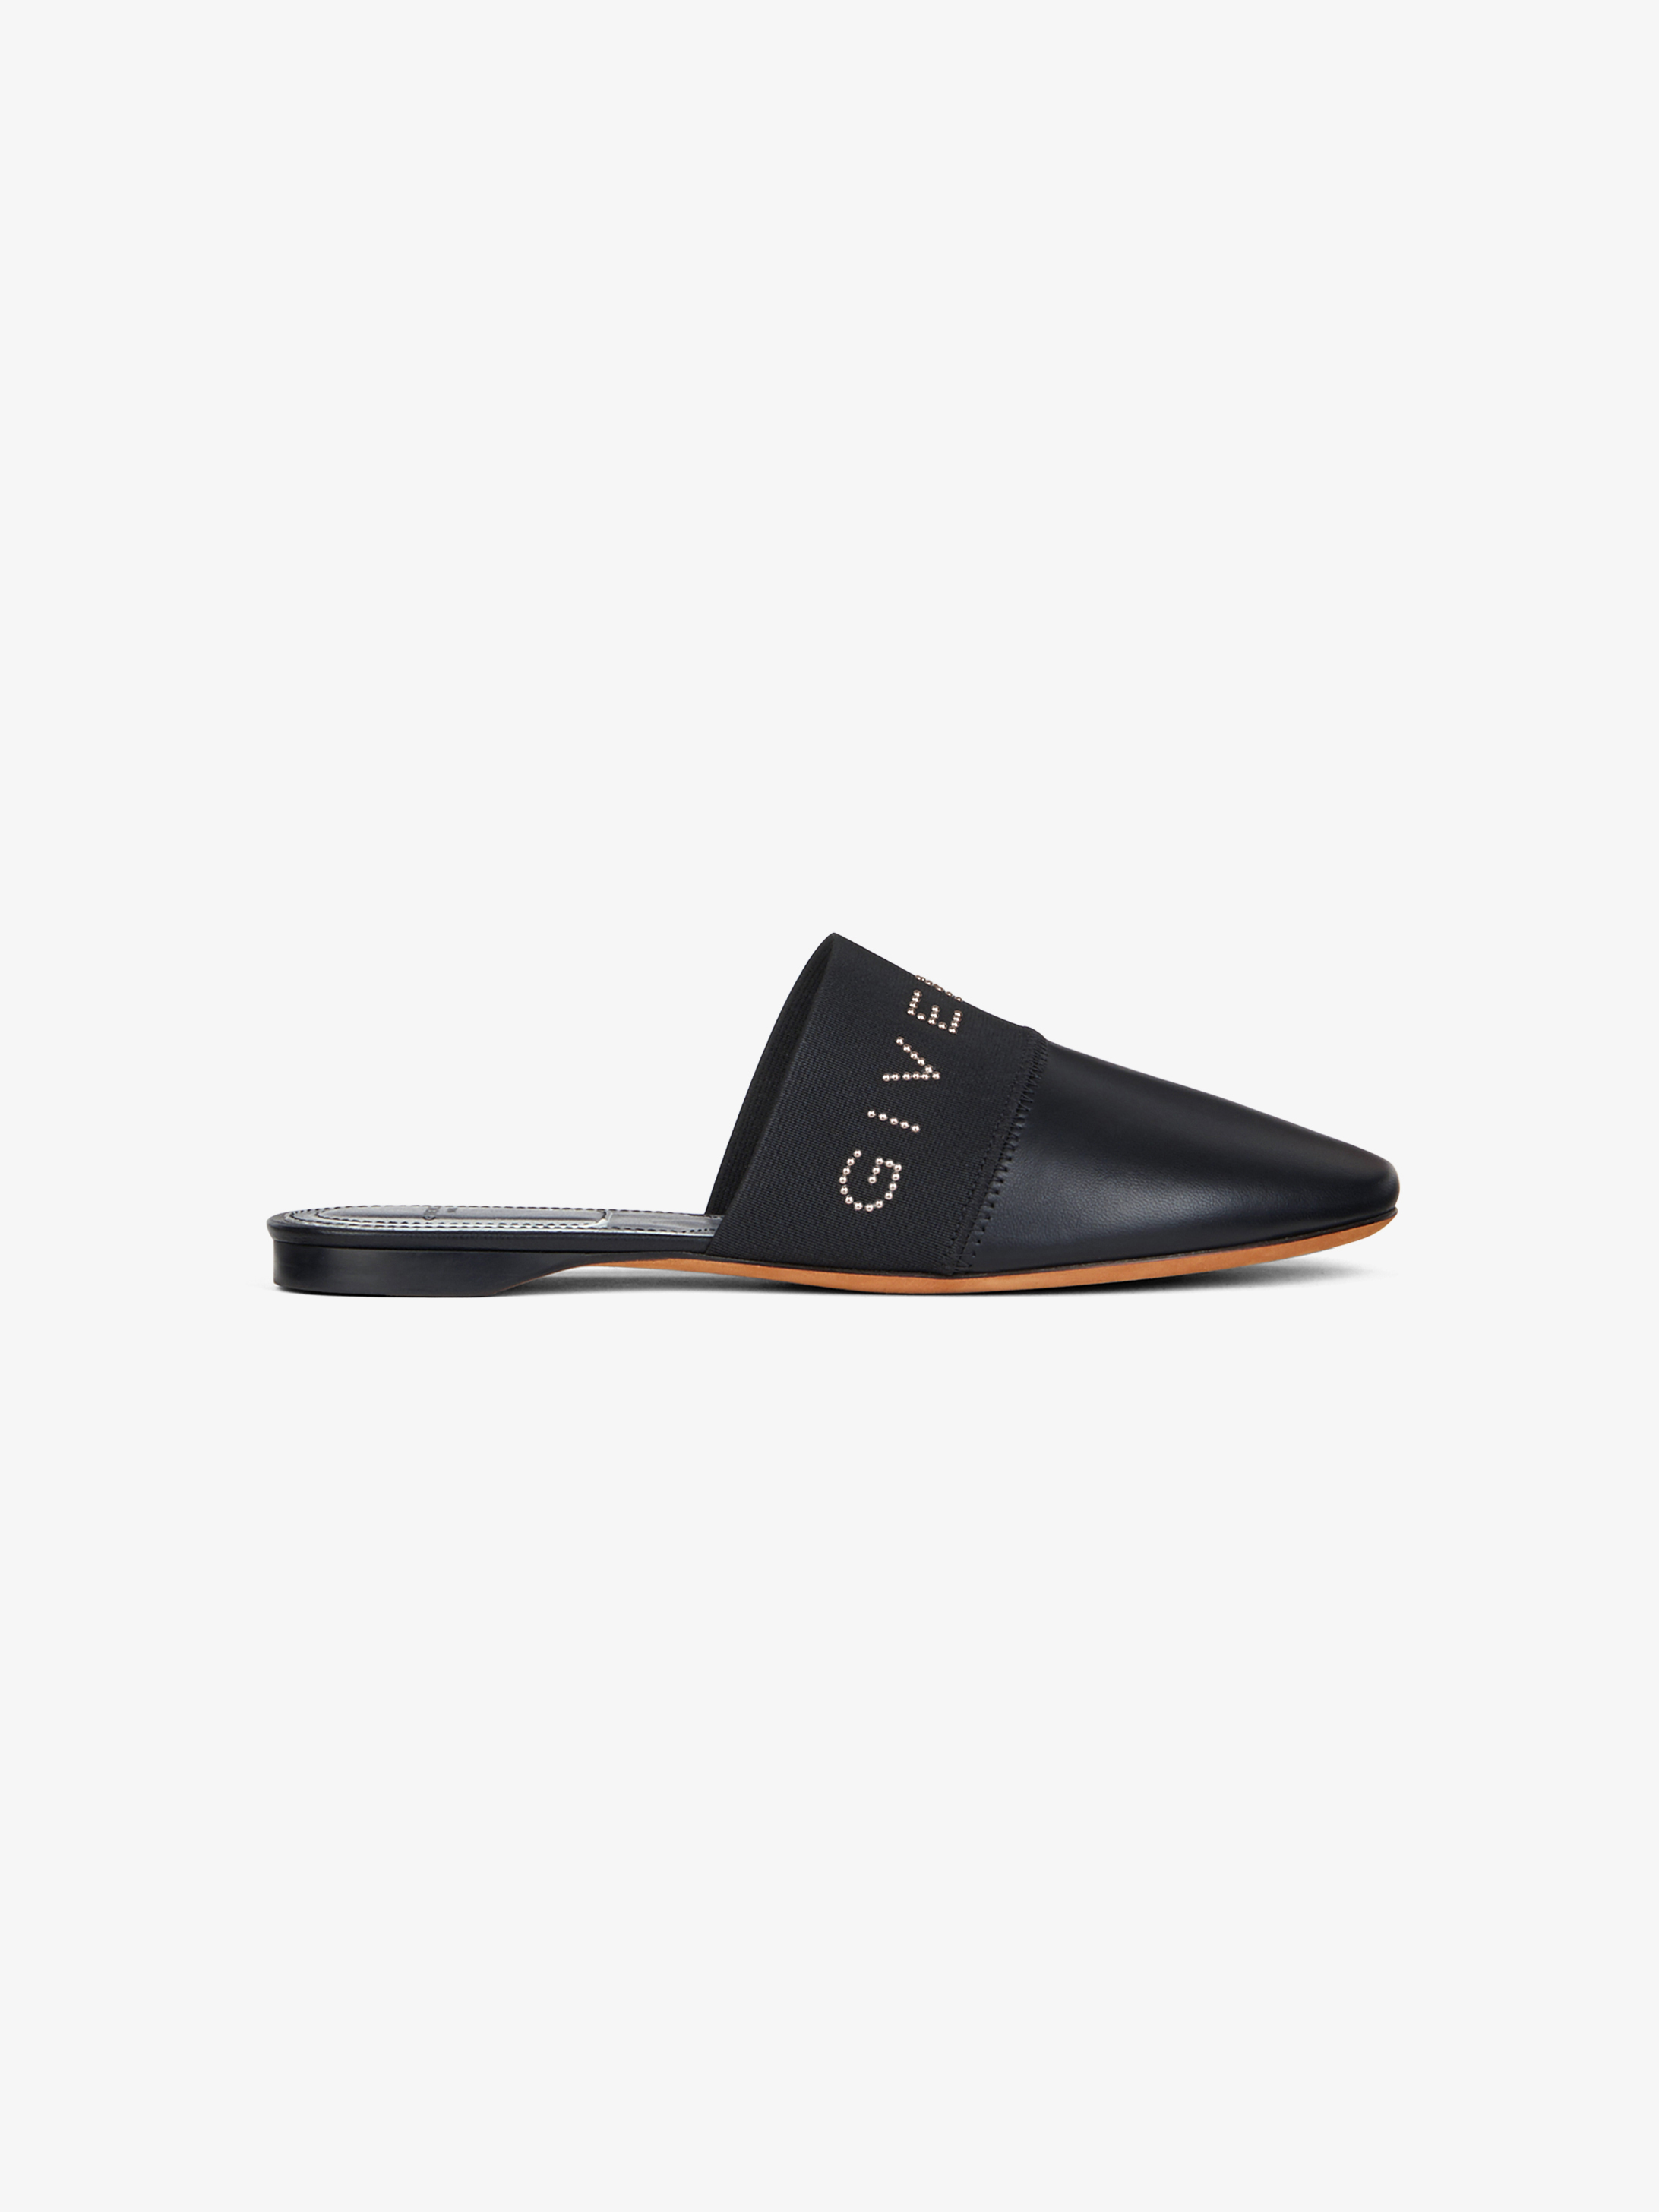 GIVENCHY studded flat mules in leather